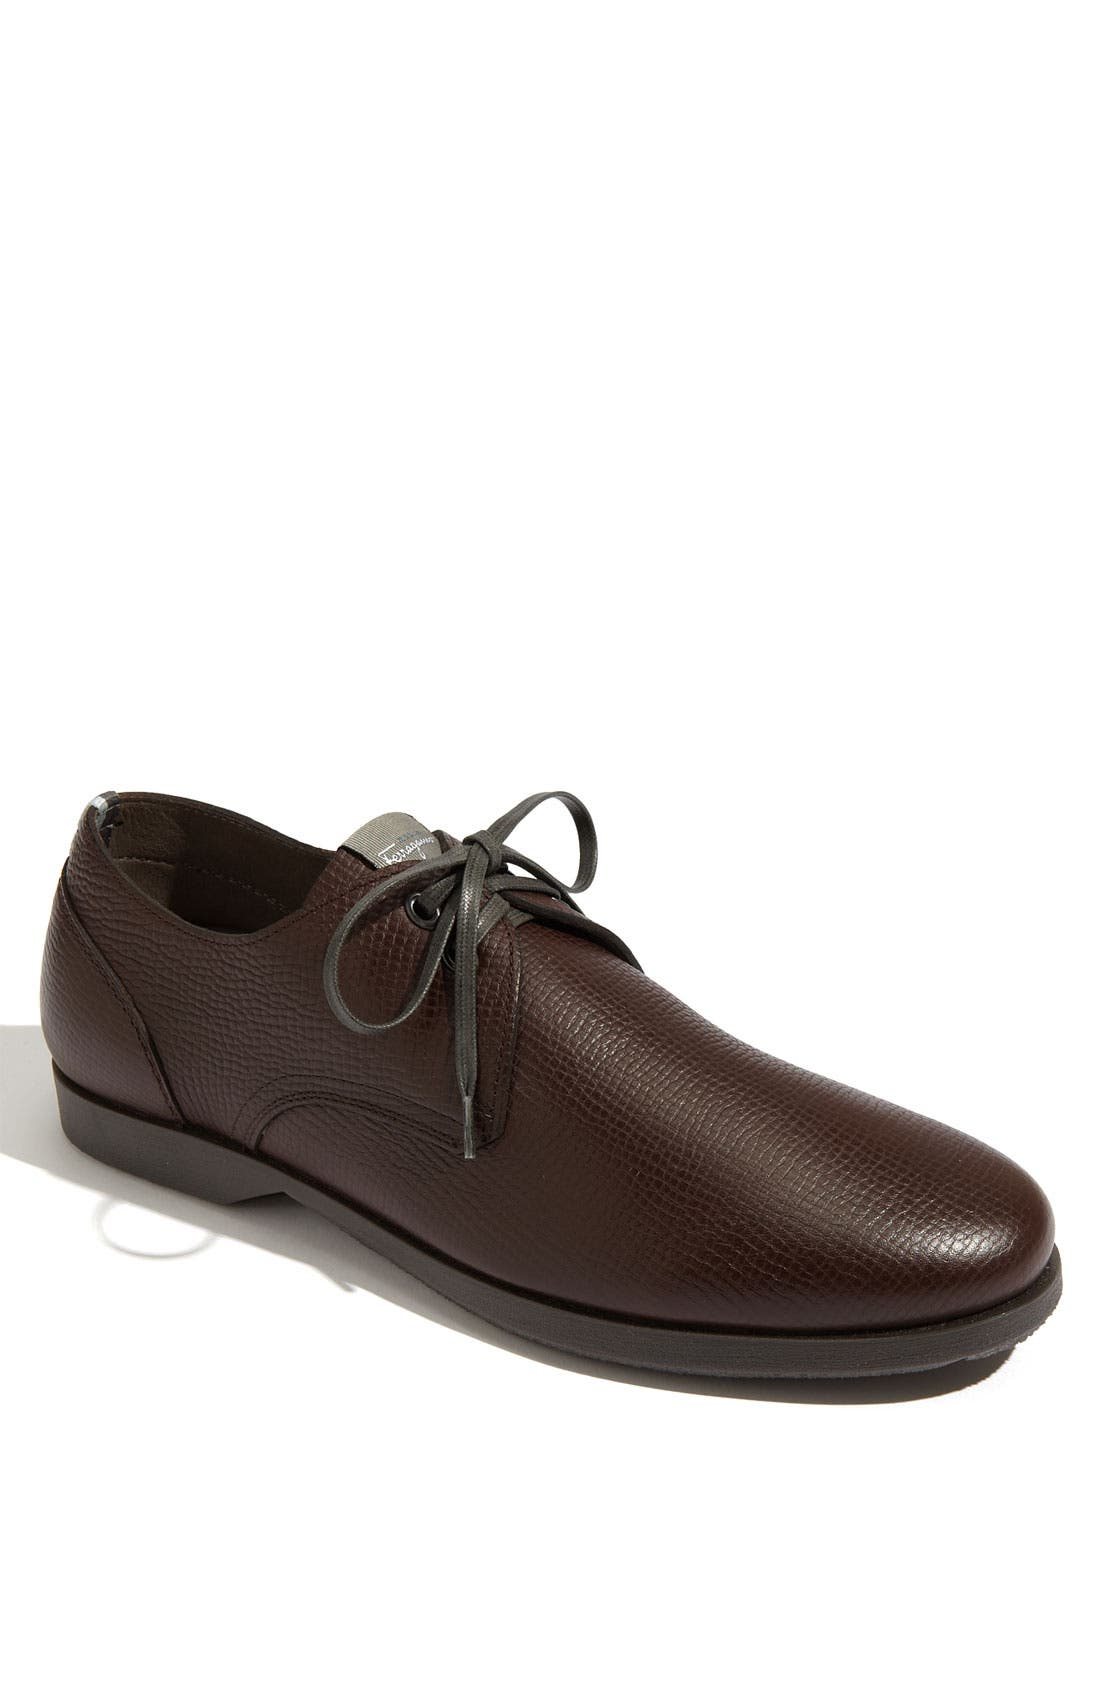 Alternate Image 1 Selected - Salvatore Ferragamo 'Motion' Oxford